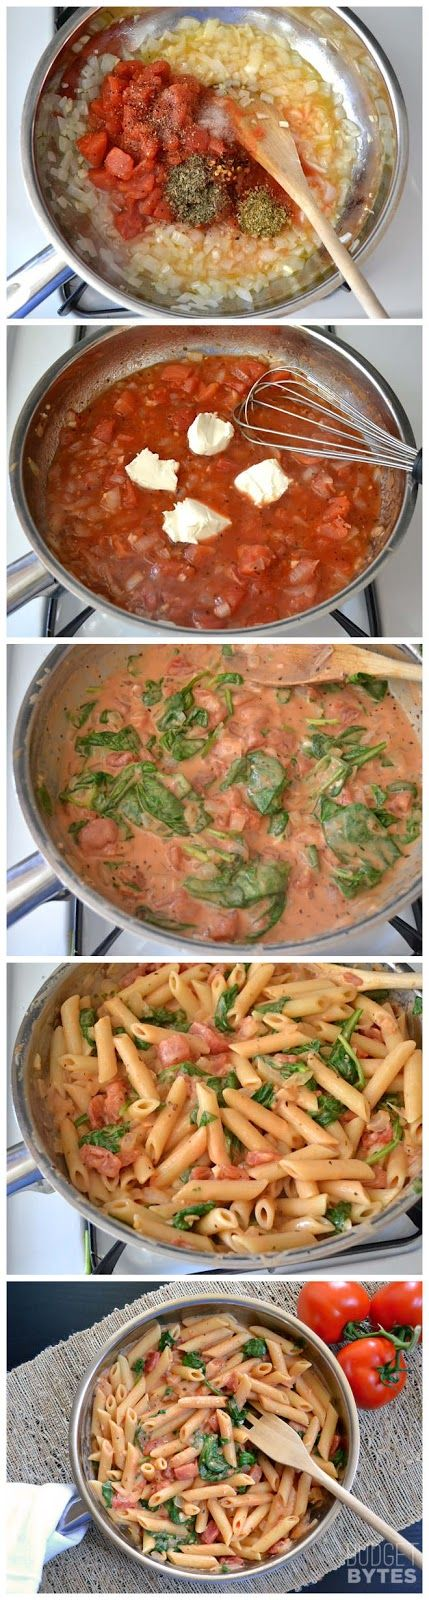 Creamy Tomato & Spinach Pasta: Try this recipe with the Greek Yogurt Cream cheese option instead of regular cream cheese and whole wheat pasta for a healthier option!